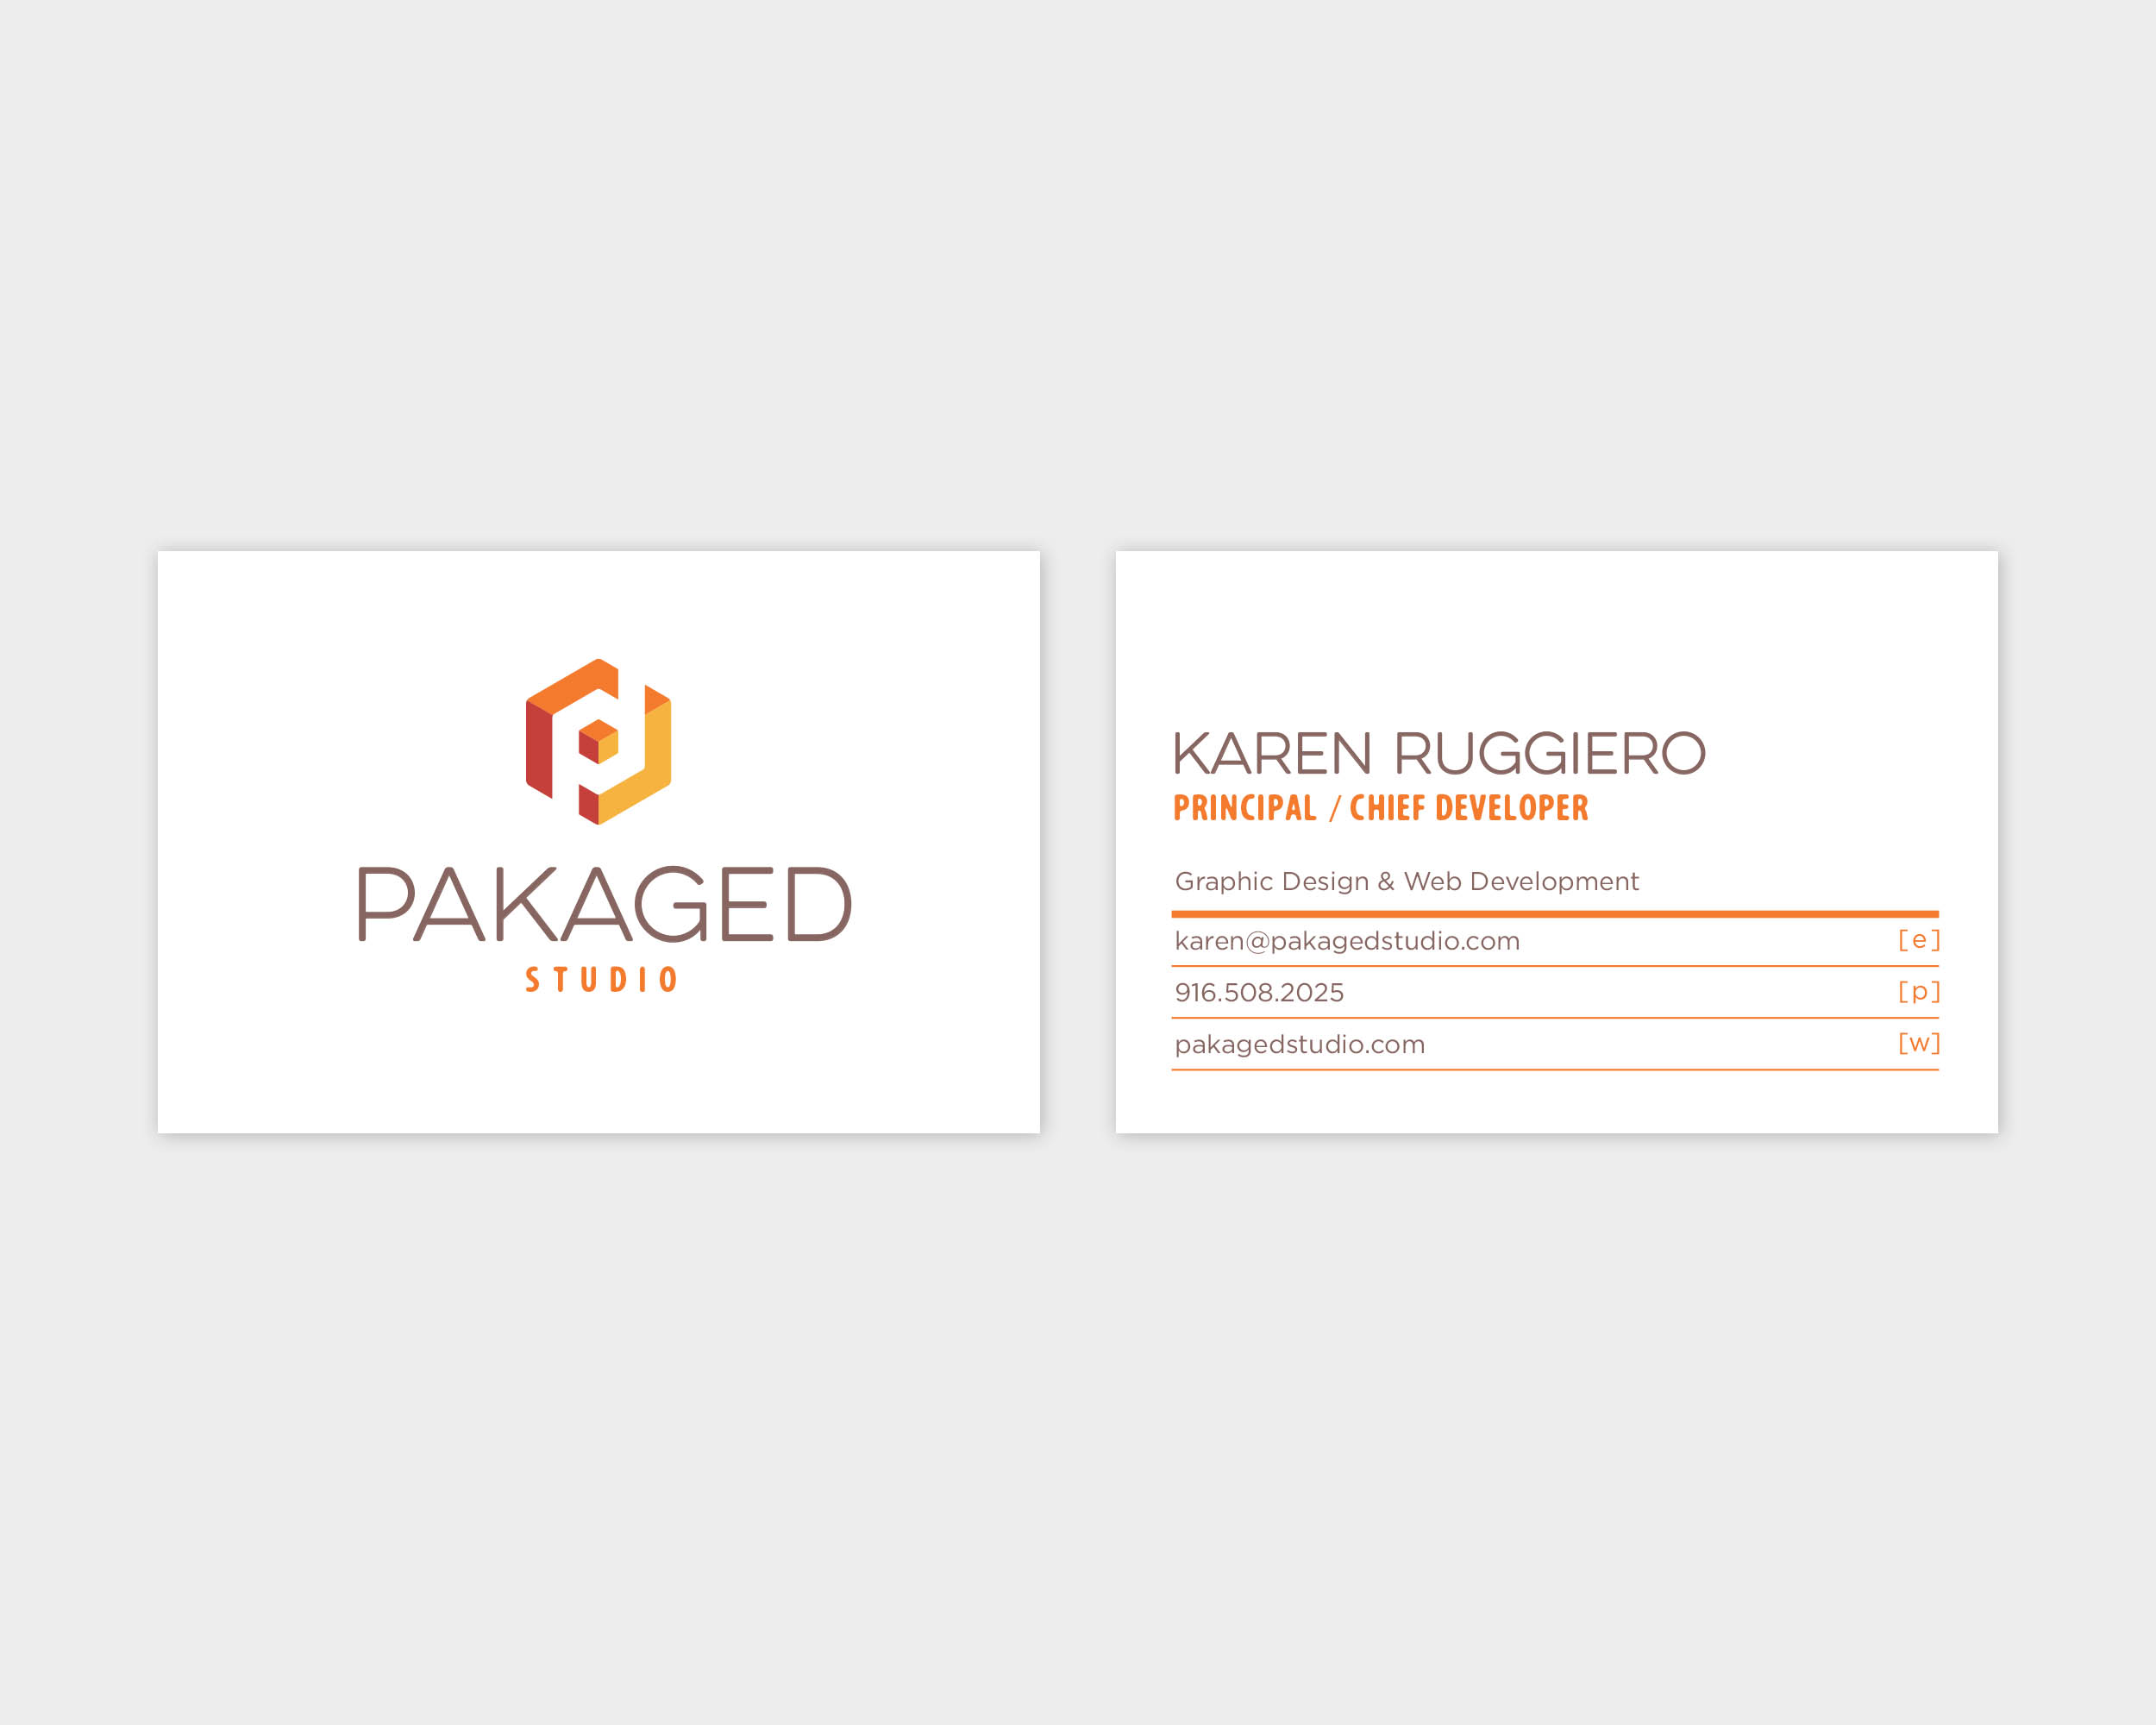 Pakaged Studio Business Card Design